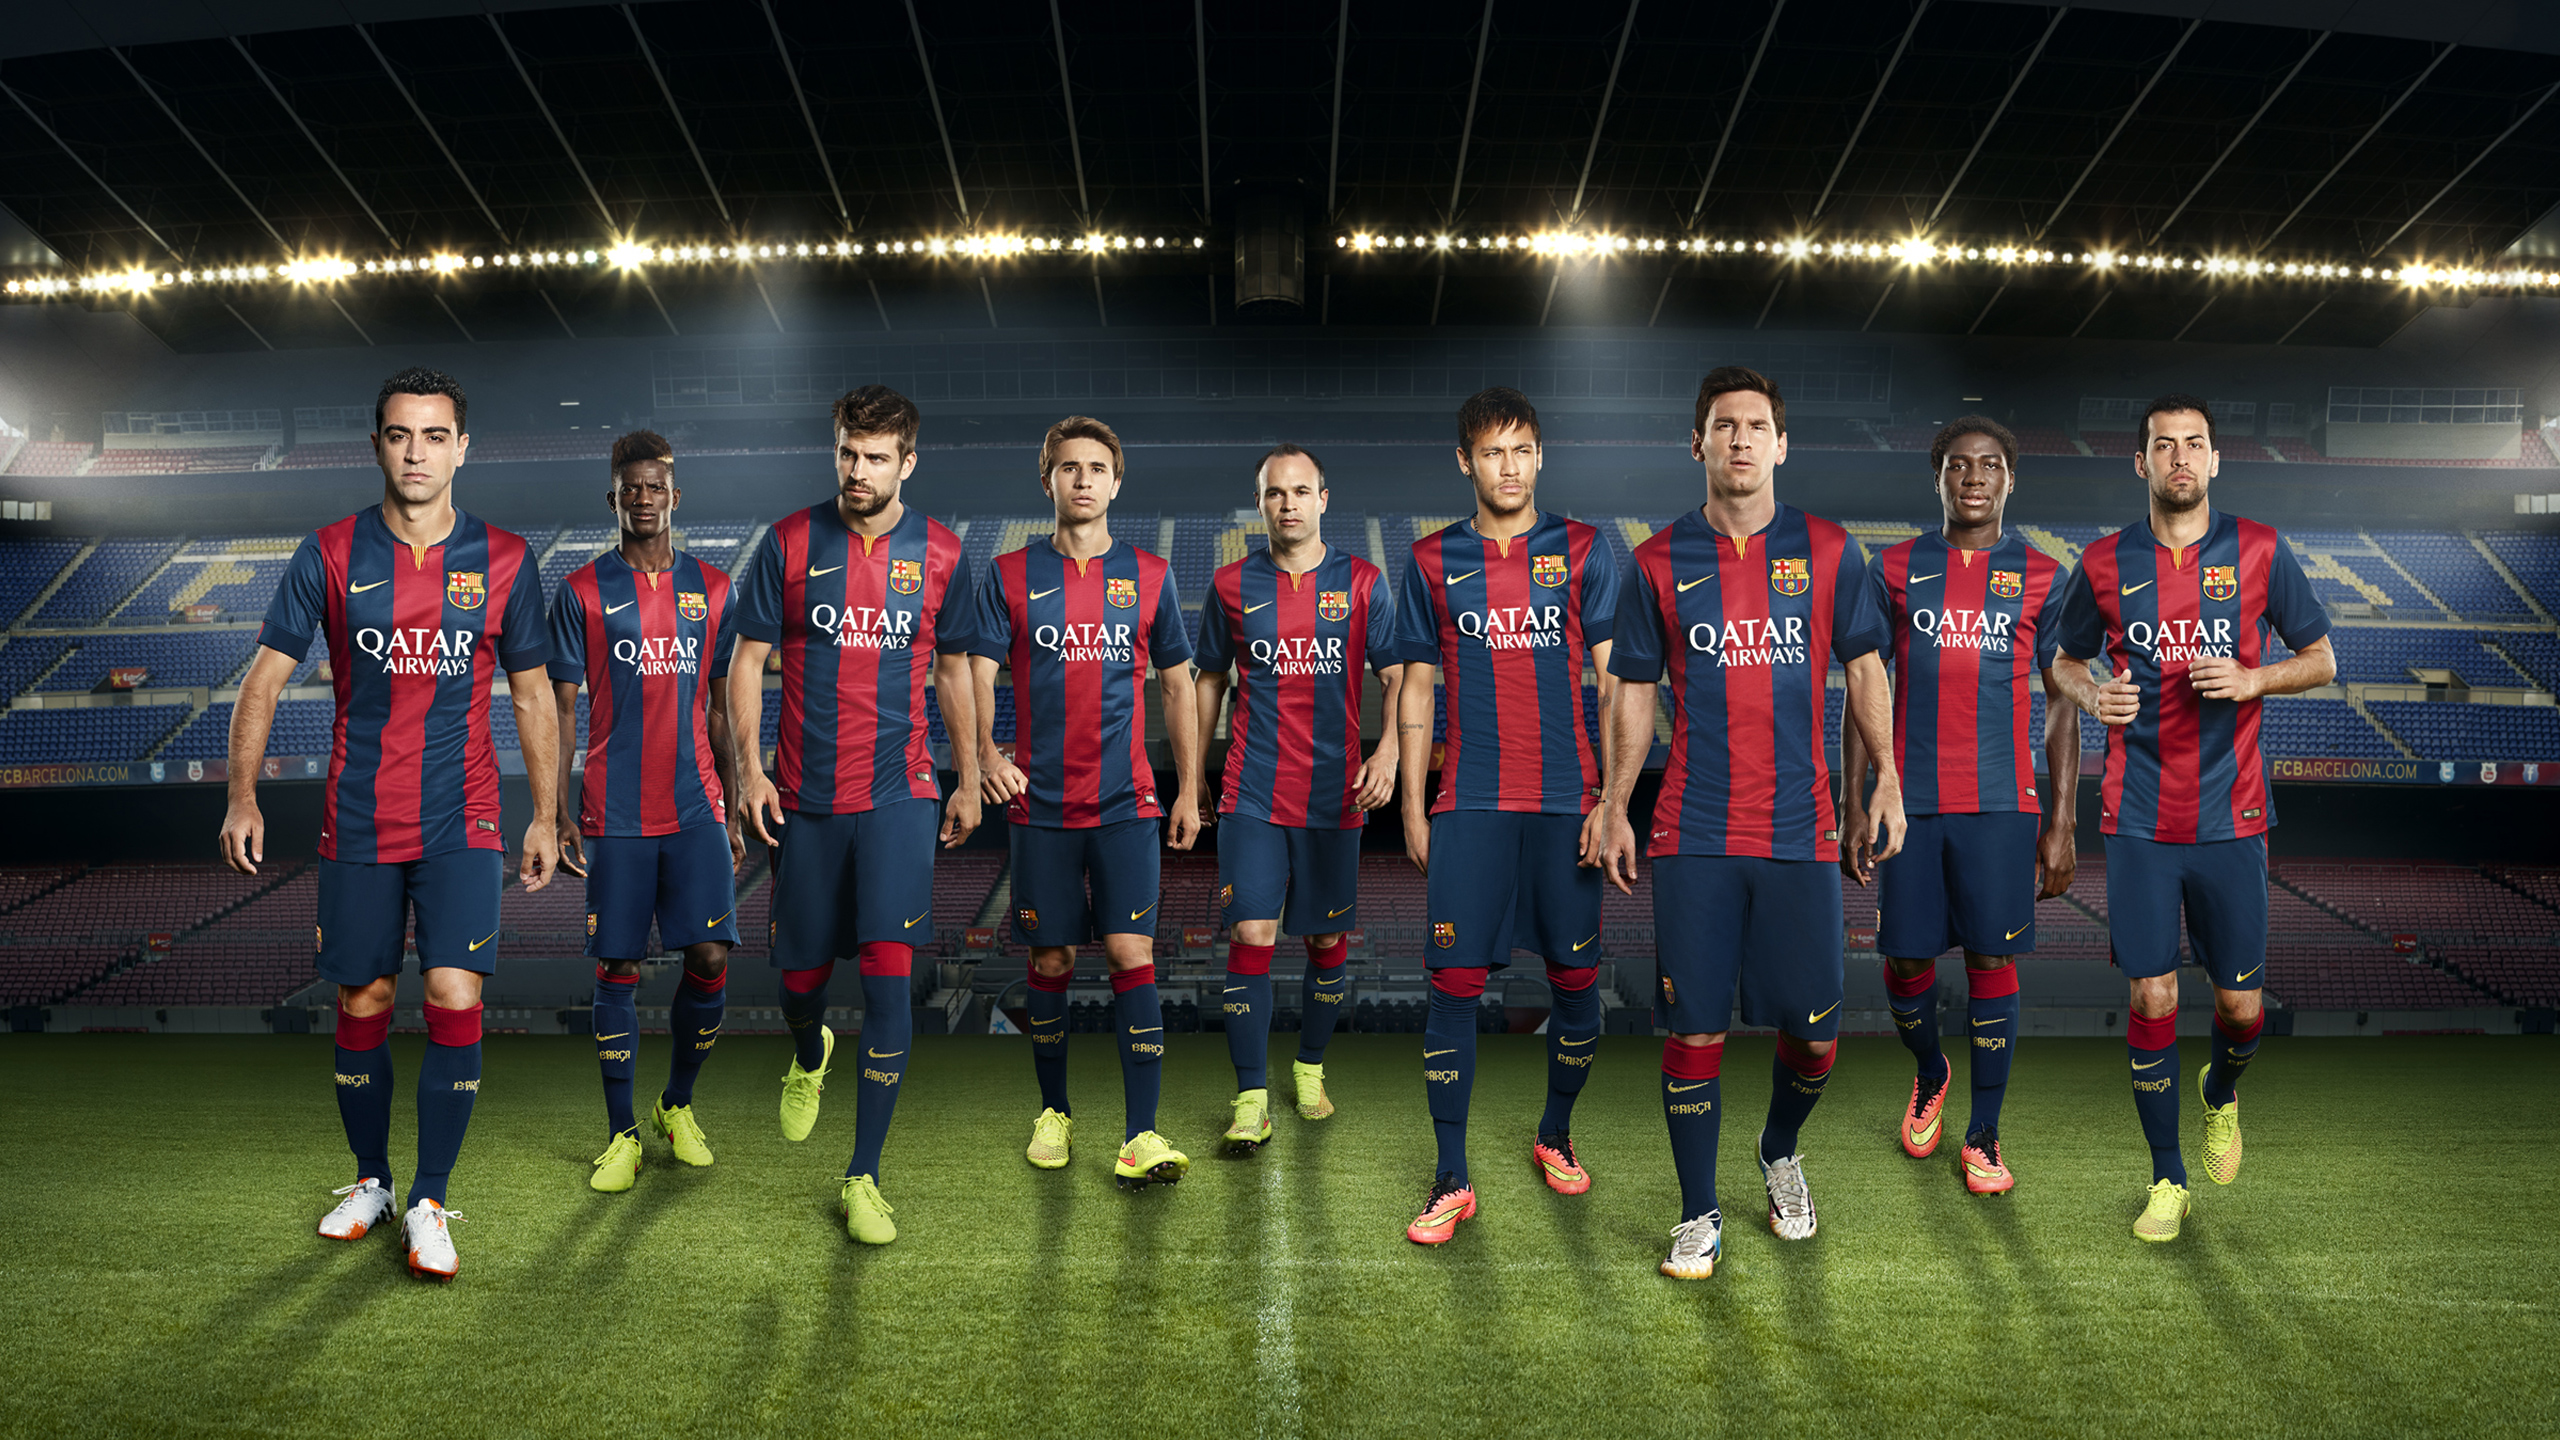 barcelona wallpapers, photos and desktop backgrounds up to 8k